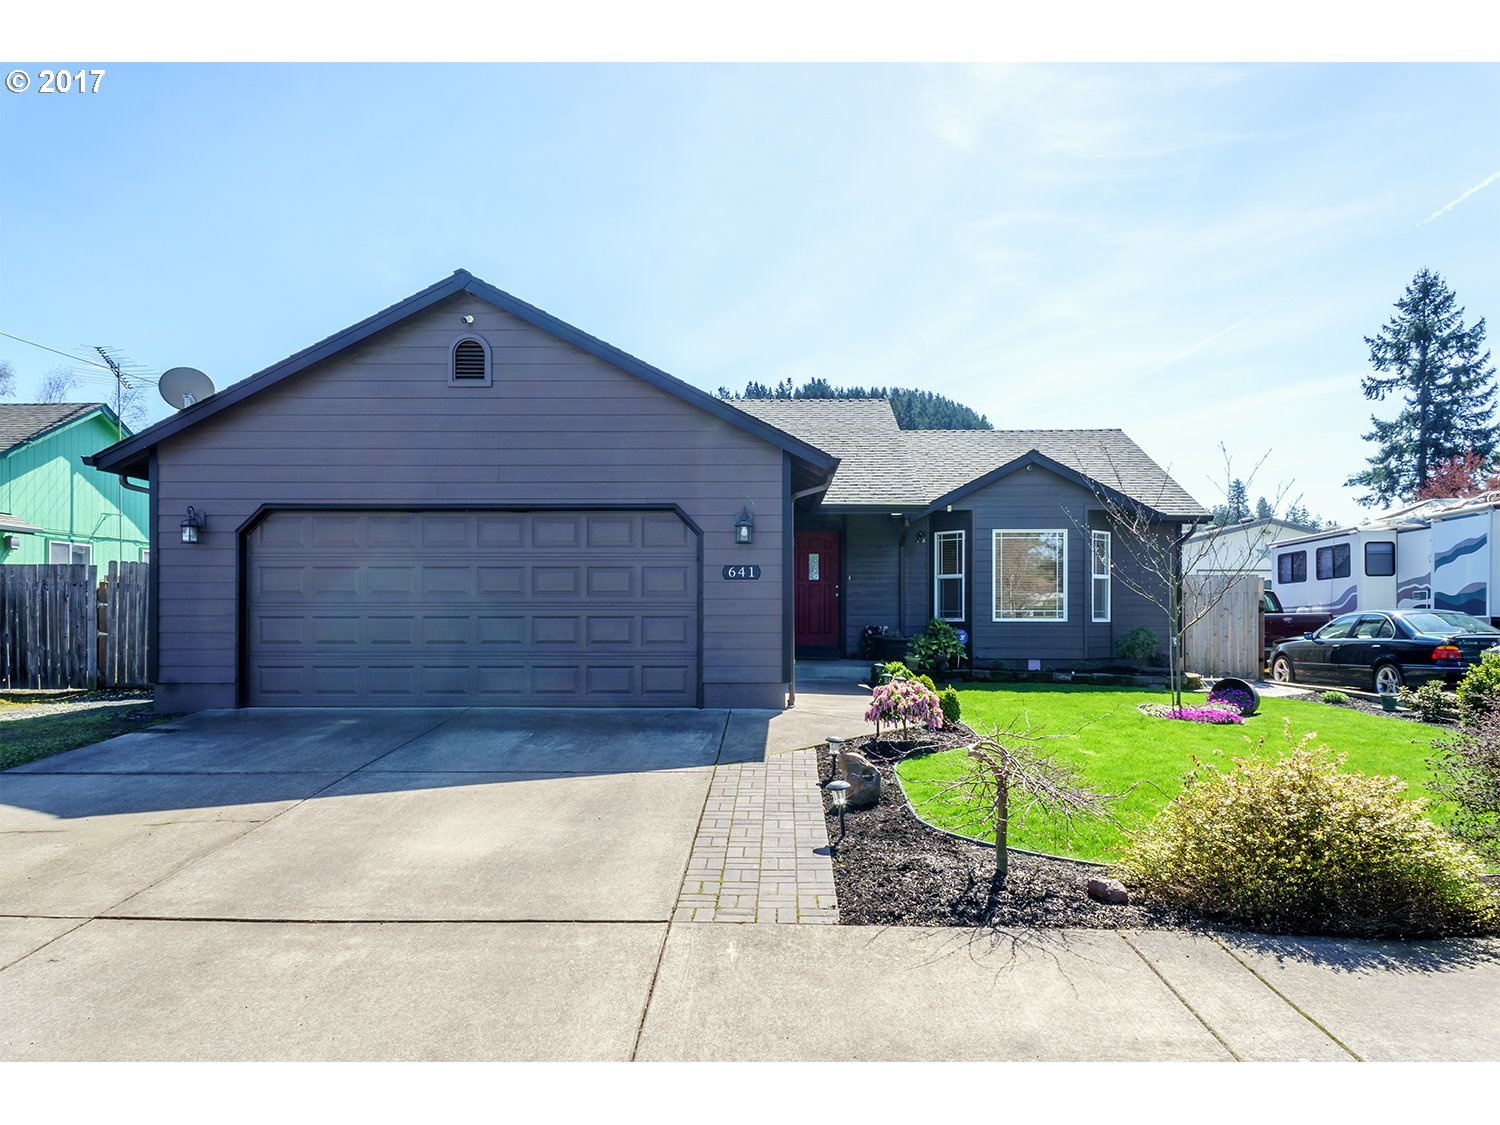 641 MARY NEAL LN, Creswell, OR 97426